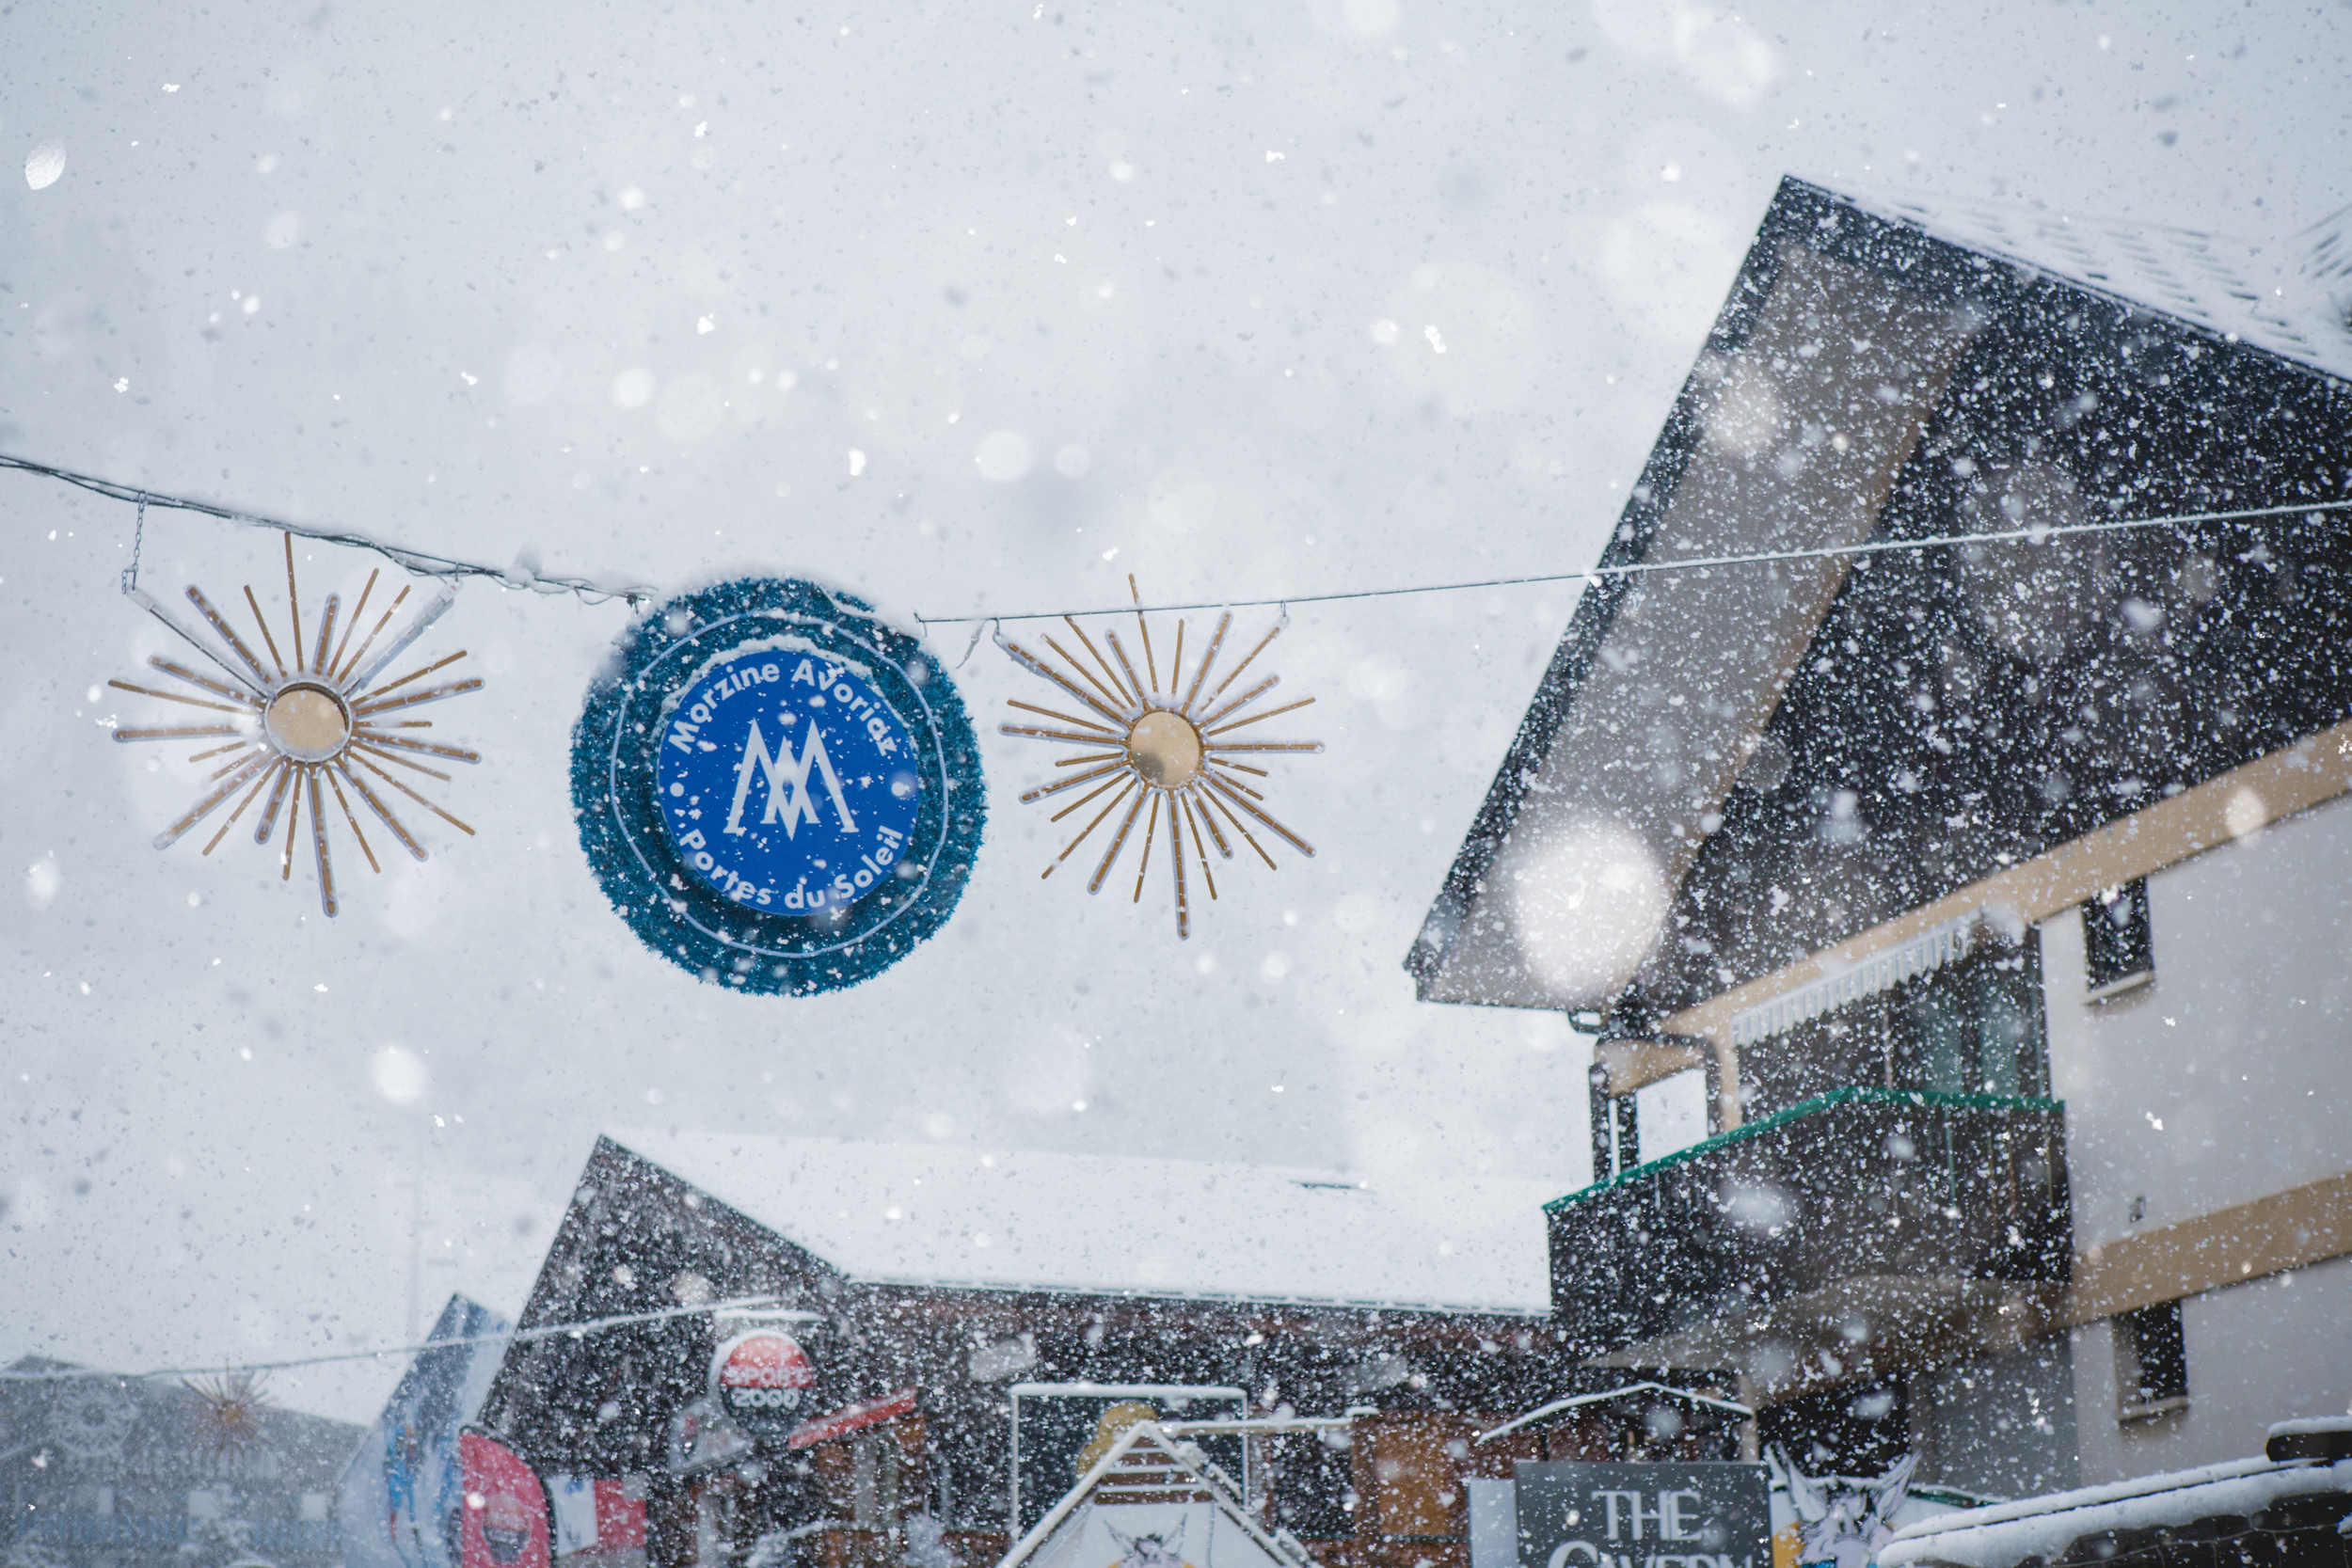 What can I do during the Christmas holidays in Morzine? - © Sam Ingles